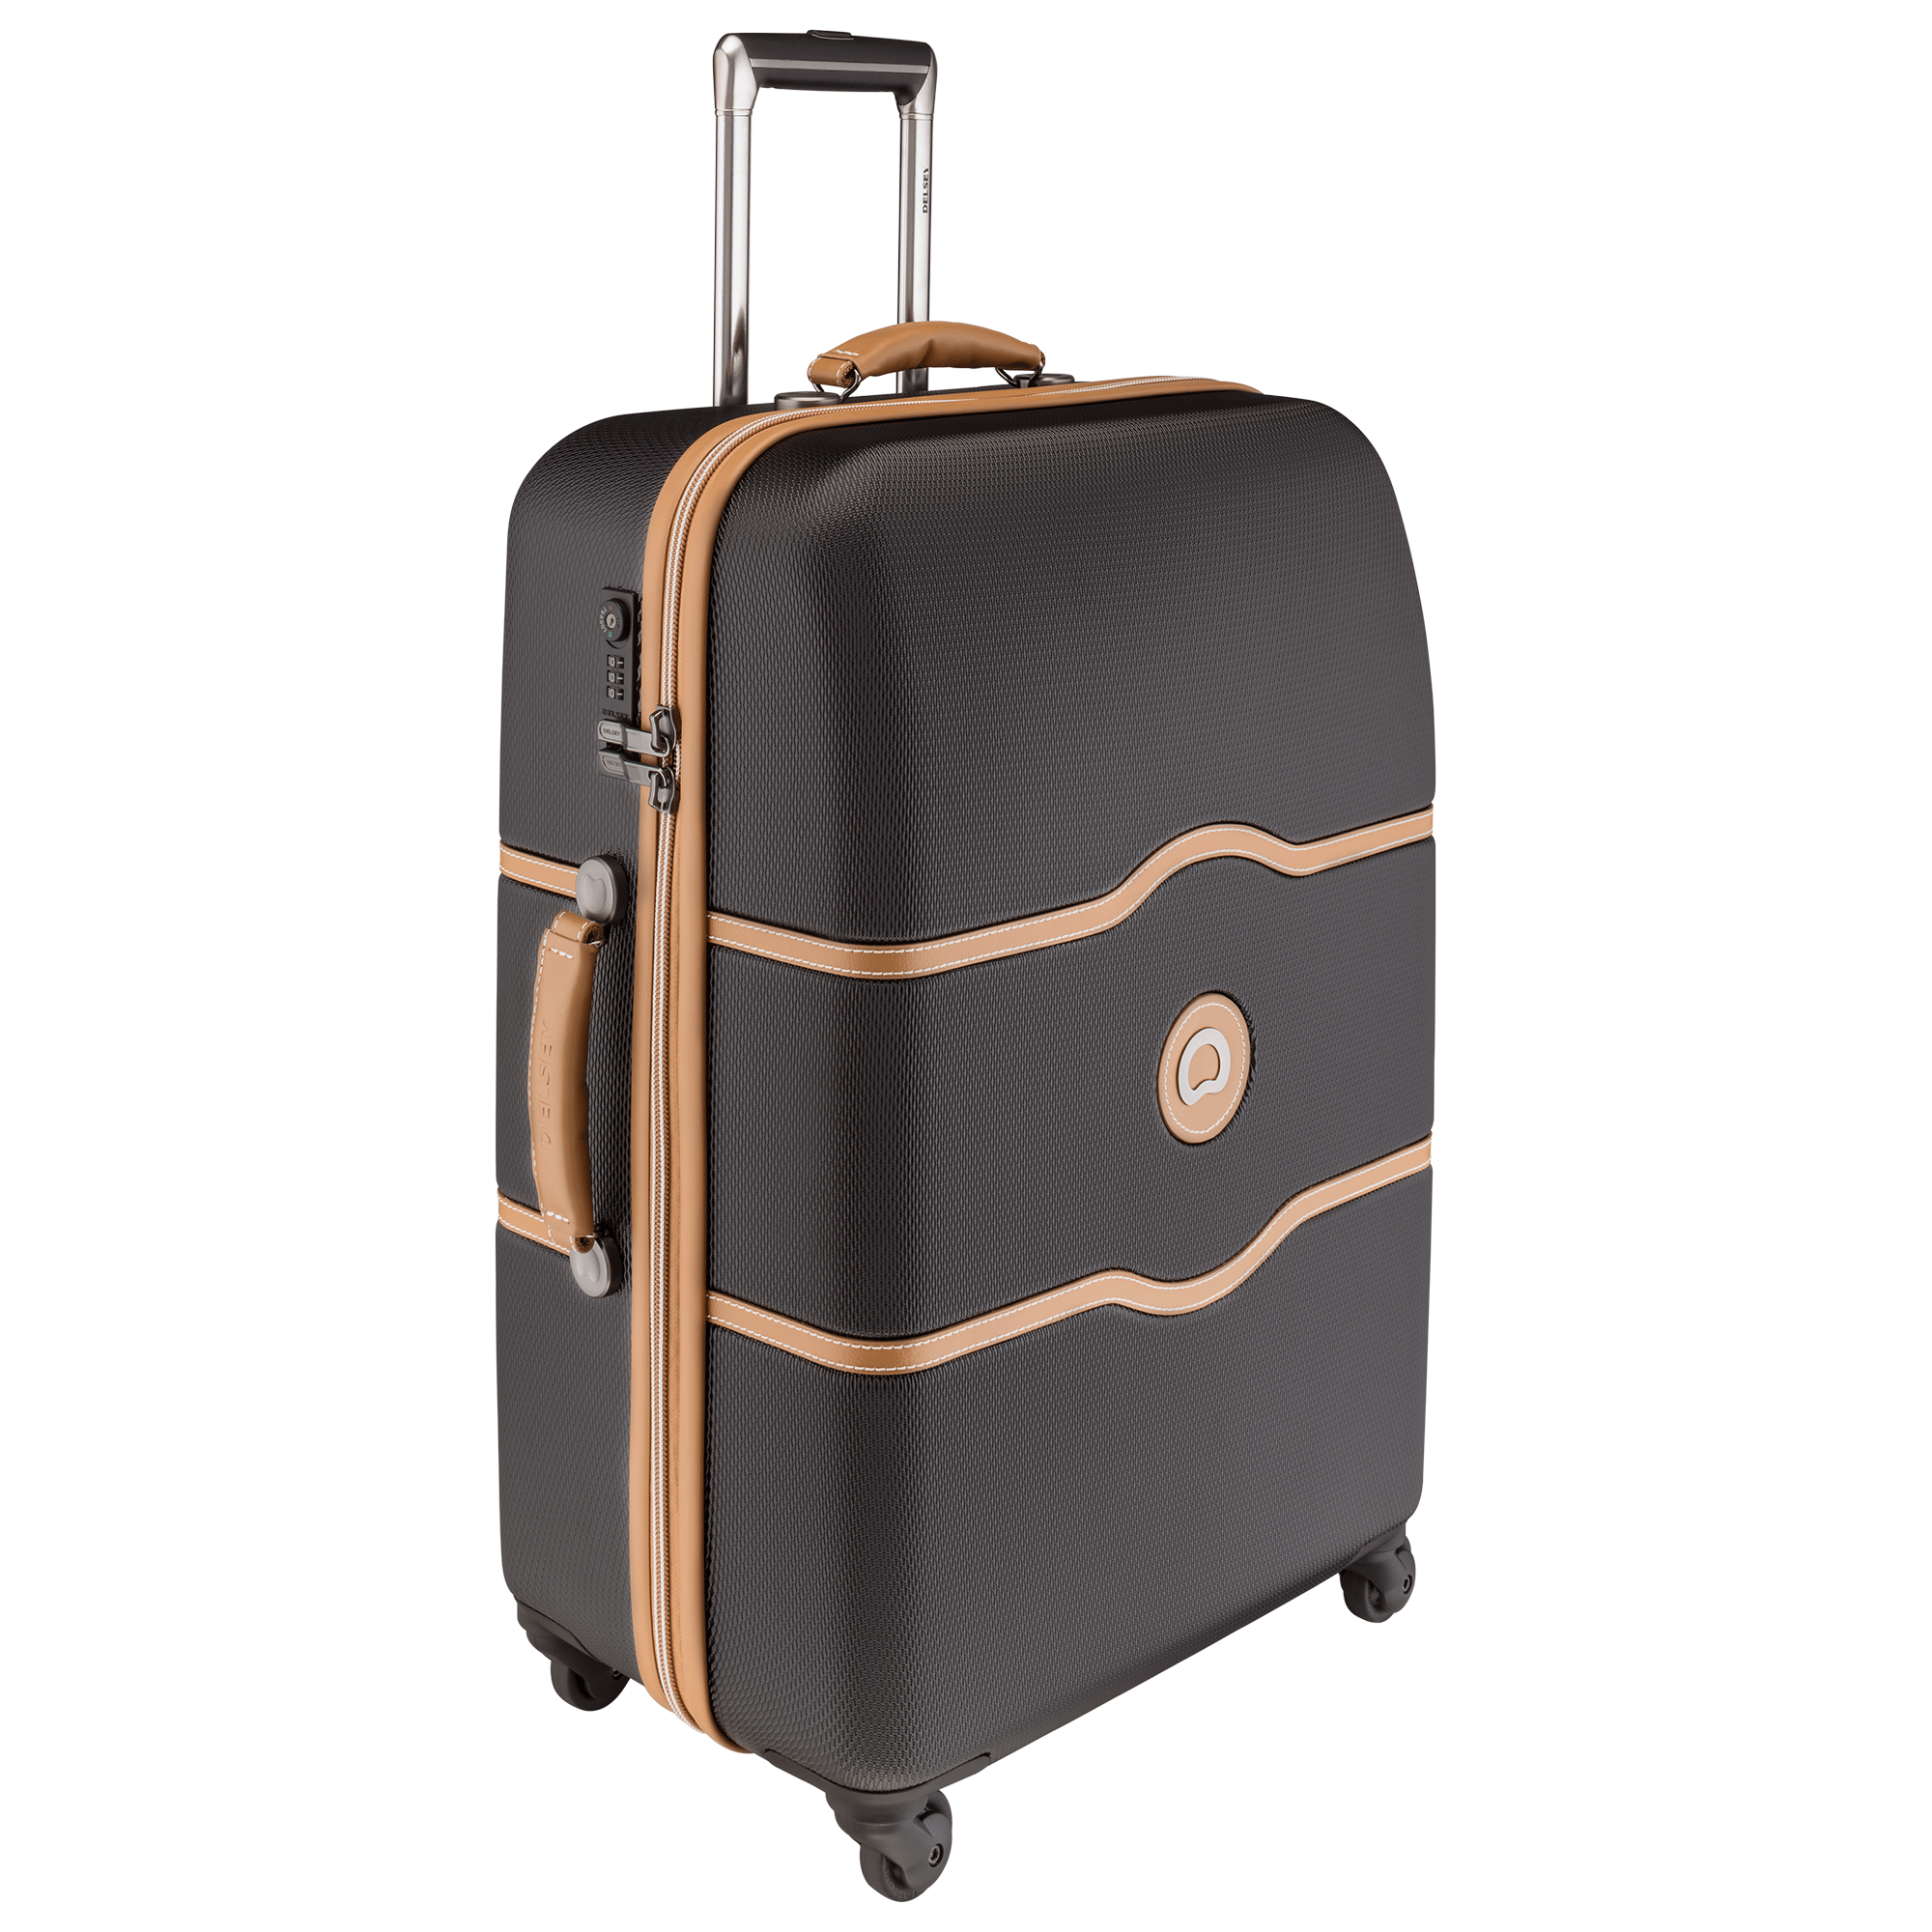 Luggage clipart suitcase handle. Png image jpg pinterest